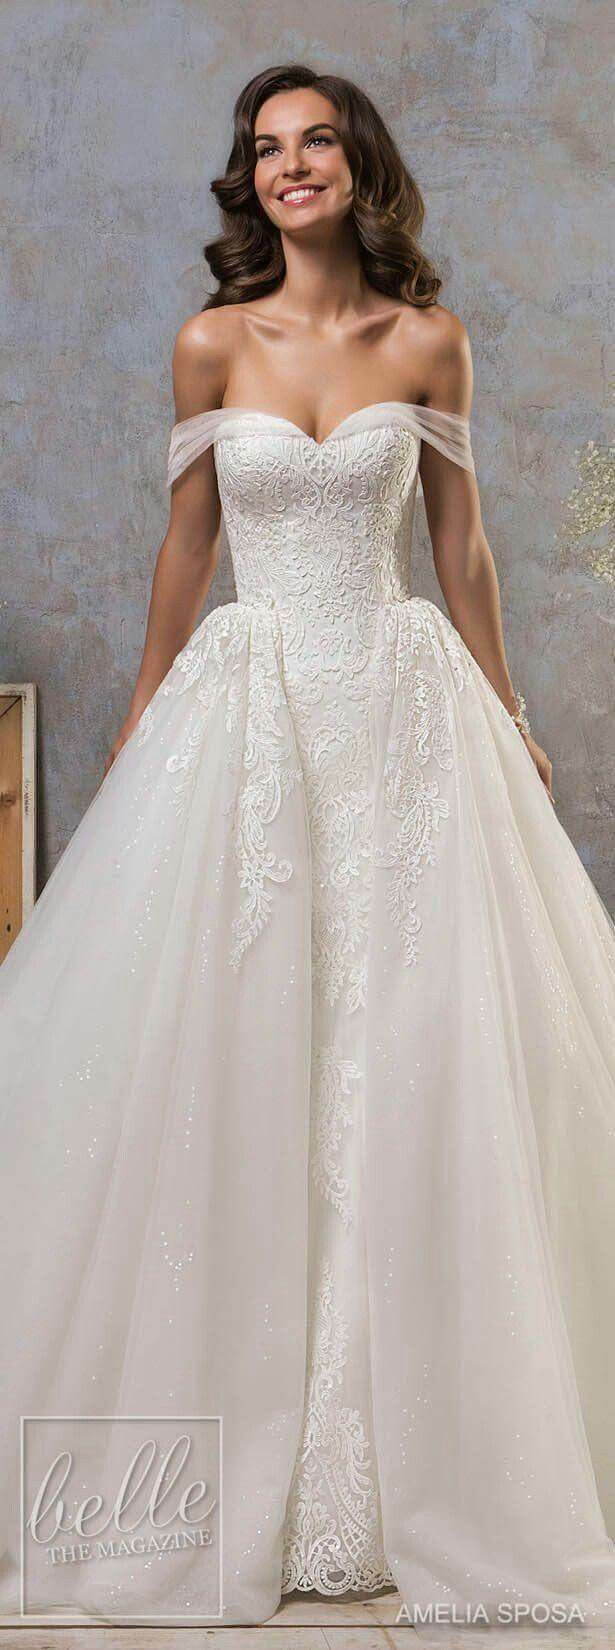 Pin by millie arenado on party ideas pinterest wedding dress